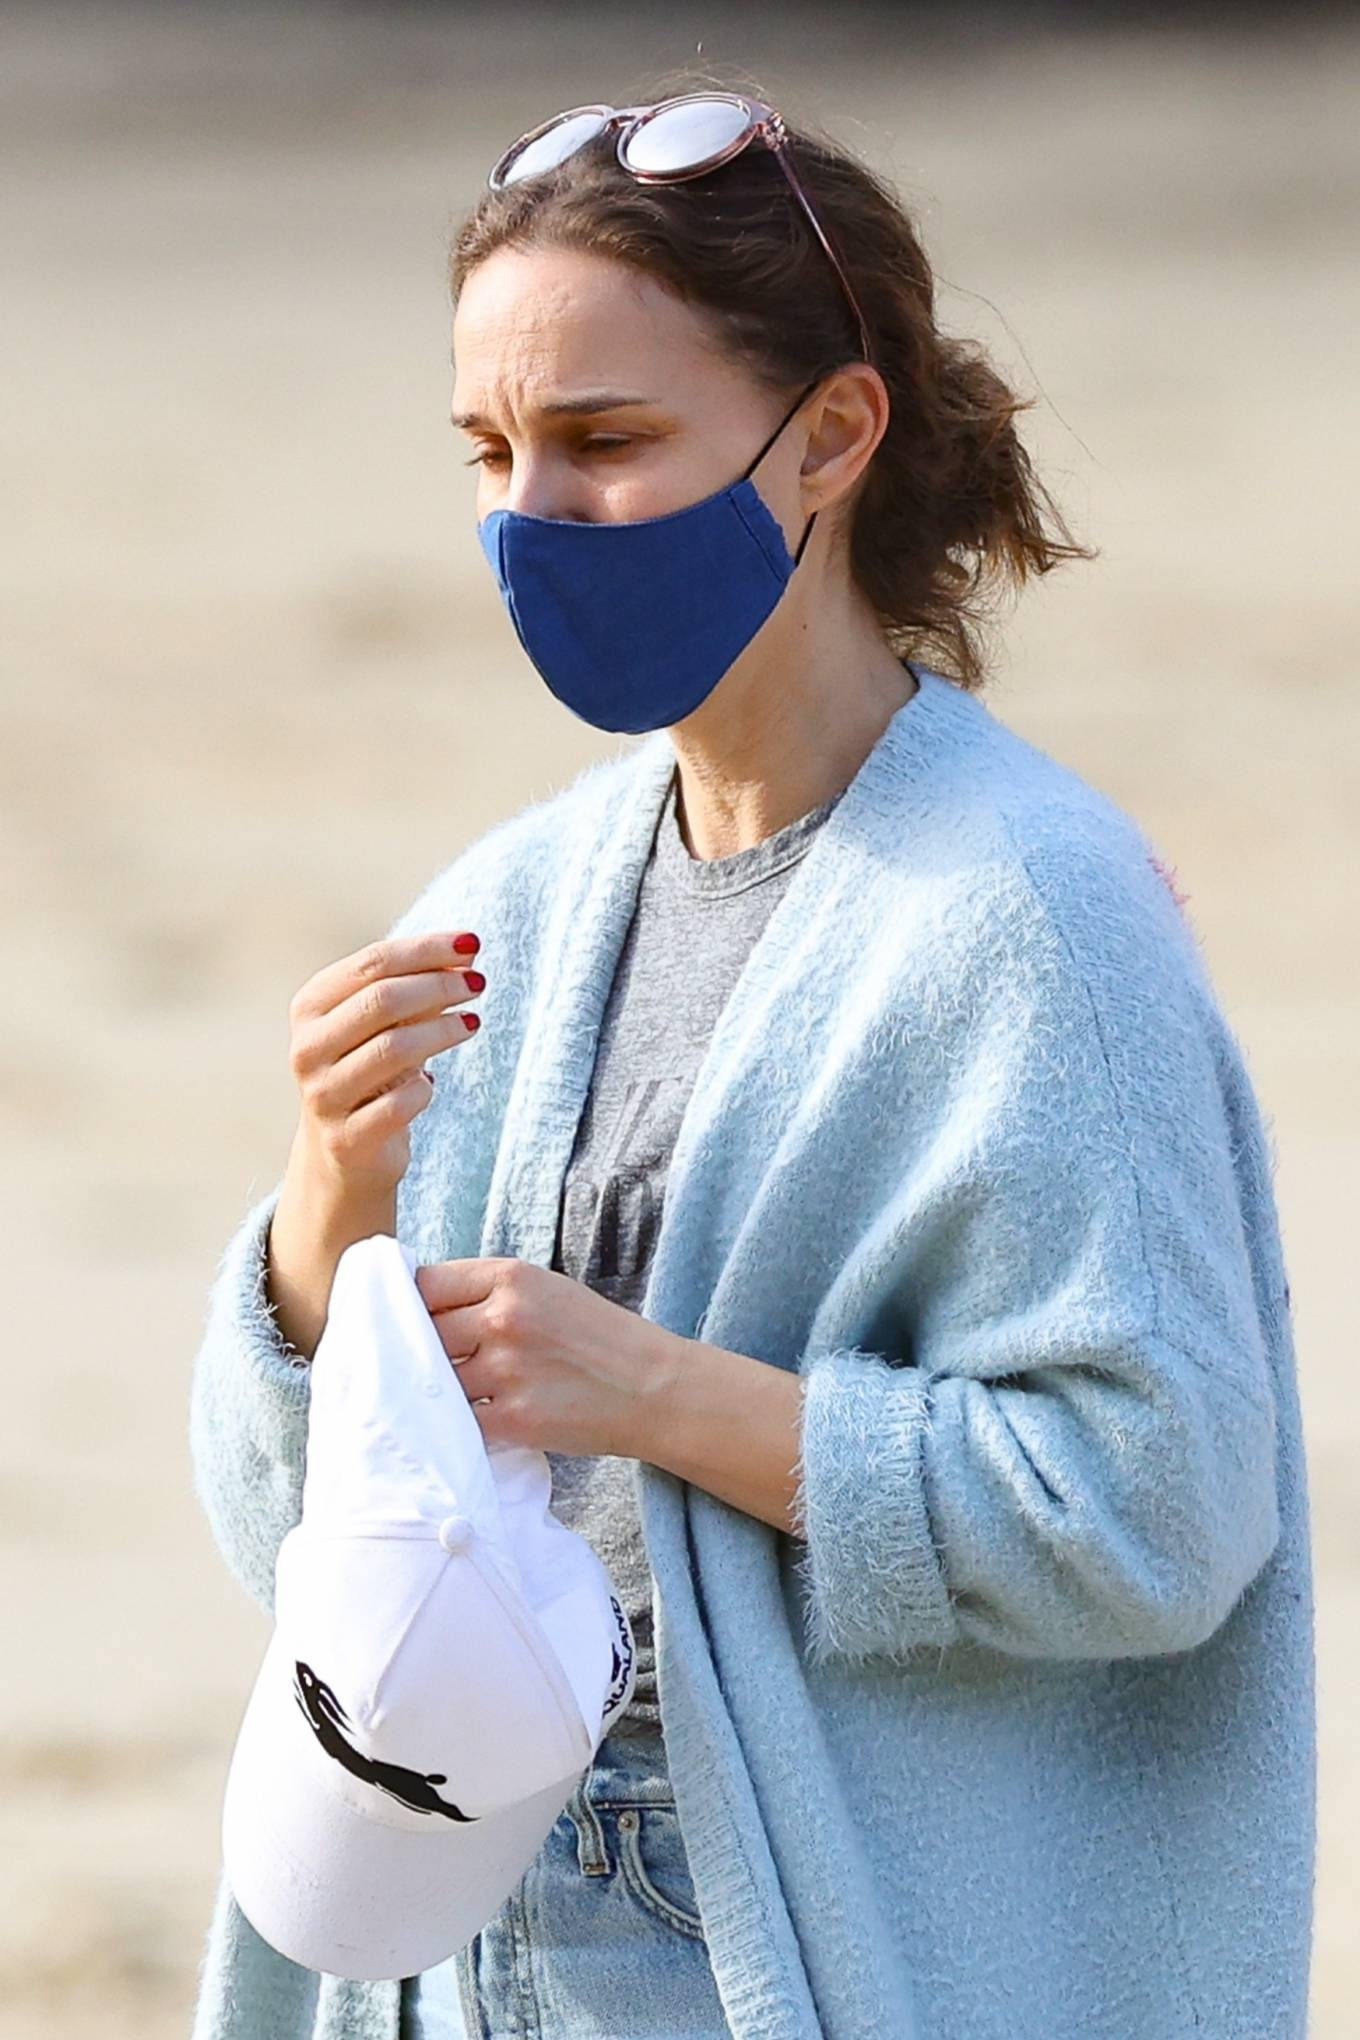 Natalie Portman - is spotted at Parsley Bay beach in Sydney